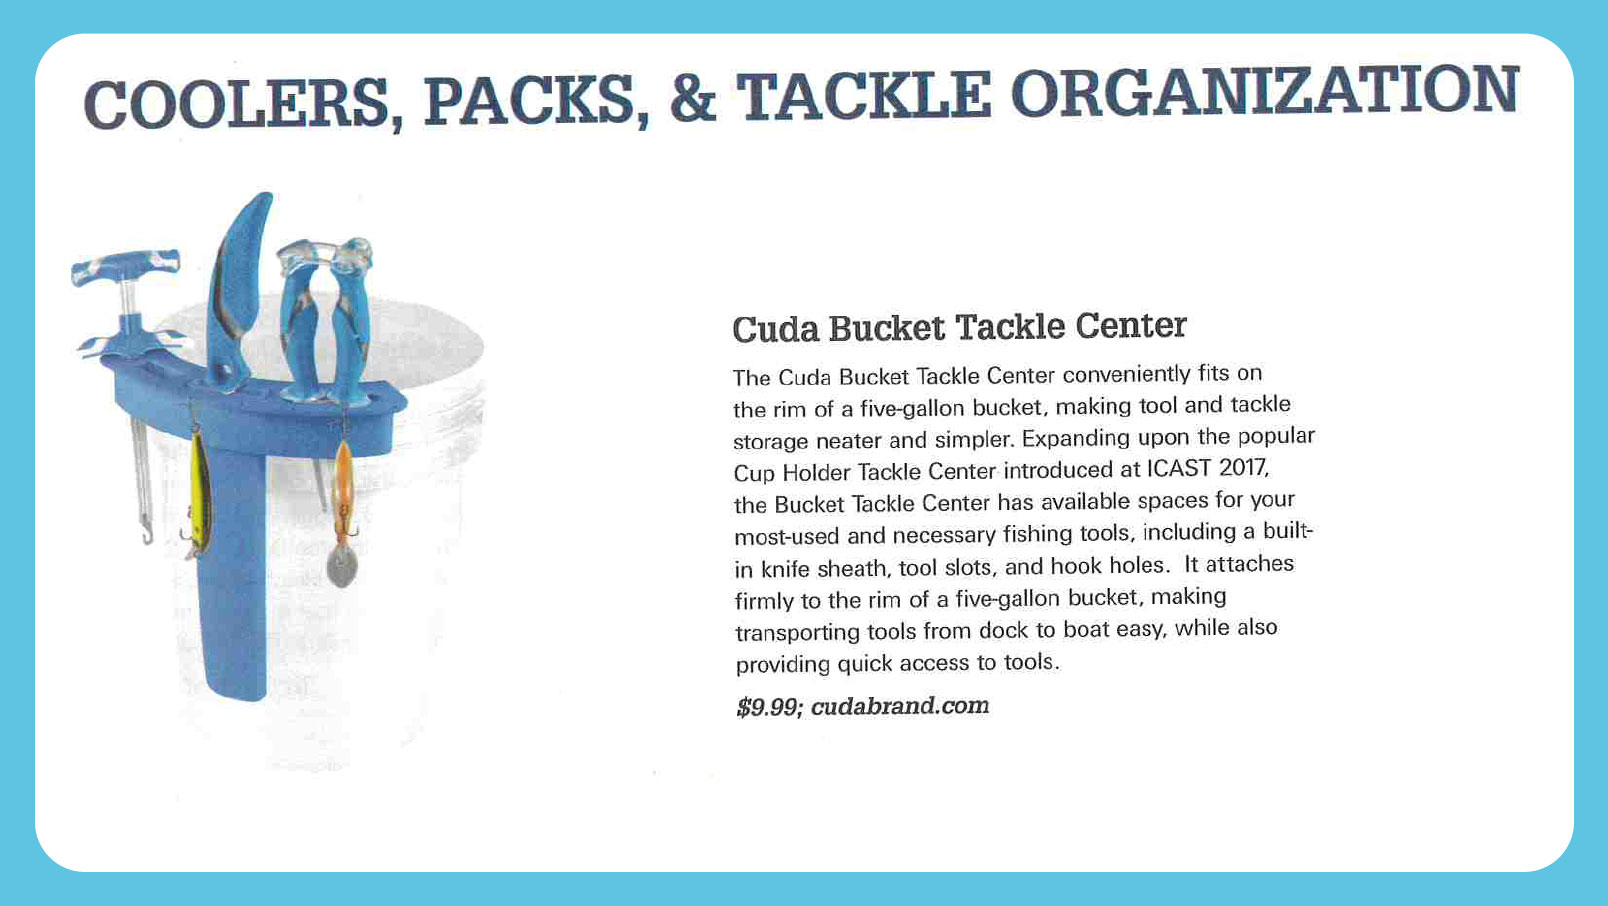 Coolers, Packs & Tackle organization - Featured in On The Water Bucket Tackle Center